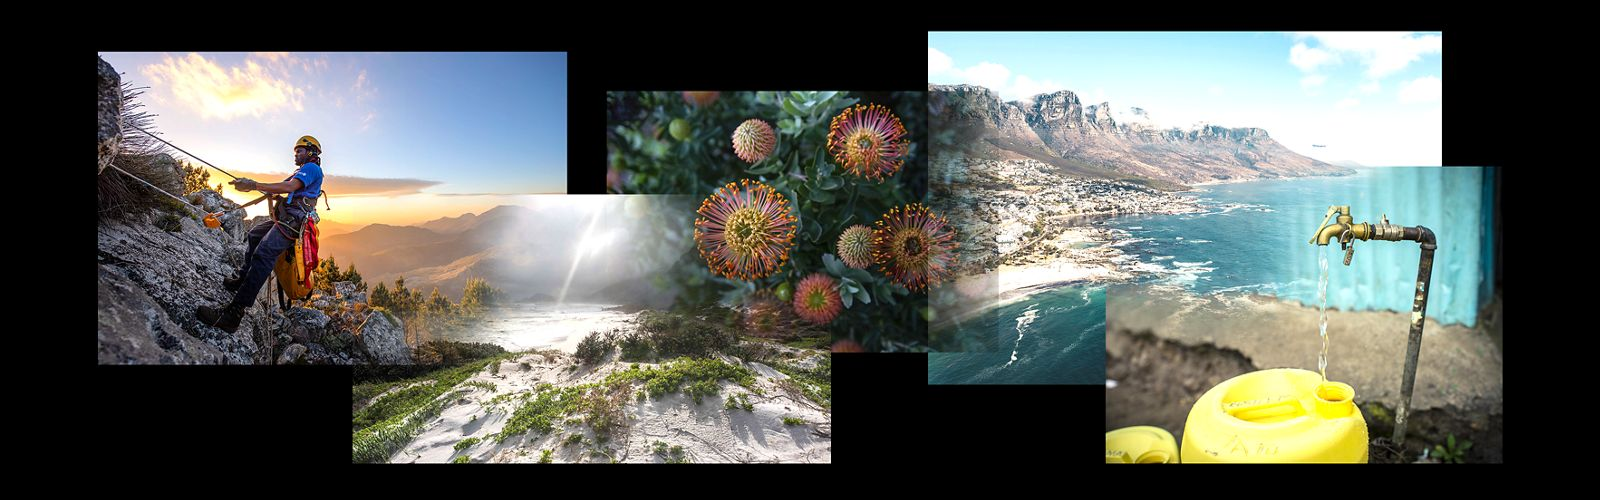 a collage of photos showing scenes from Cape Town, South Africa, including a worker scaling a mountain, landscape scenes, and a water spigot, against a black background